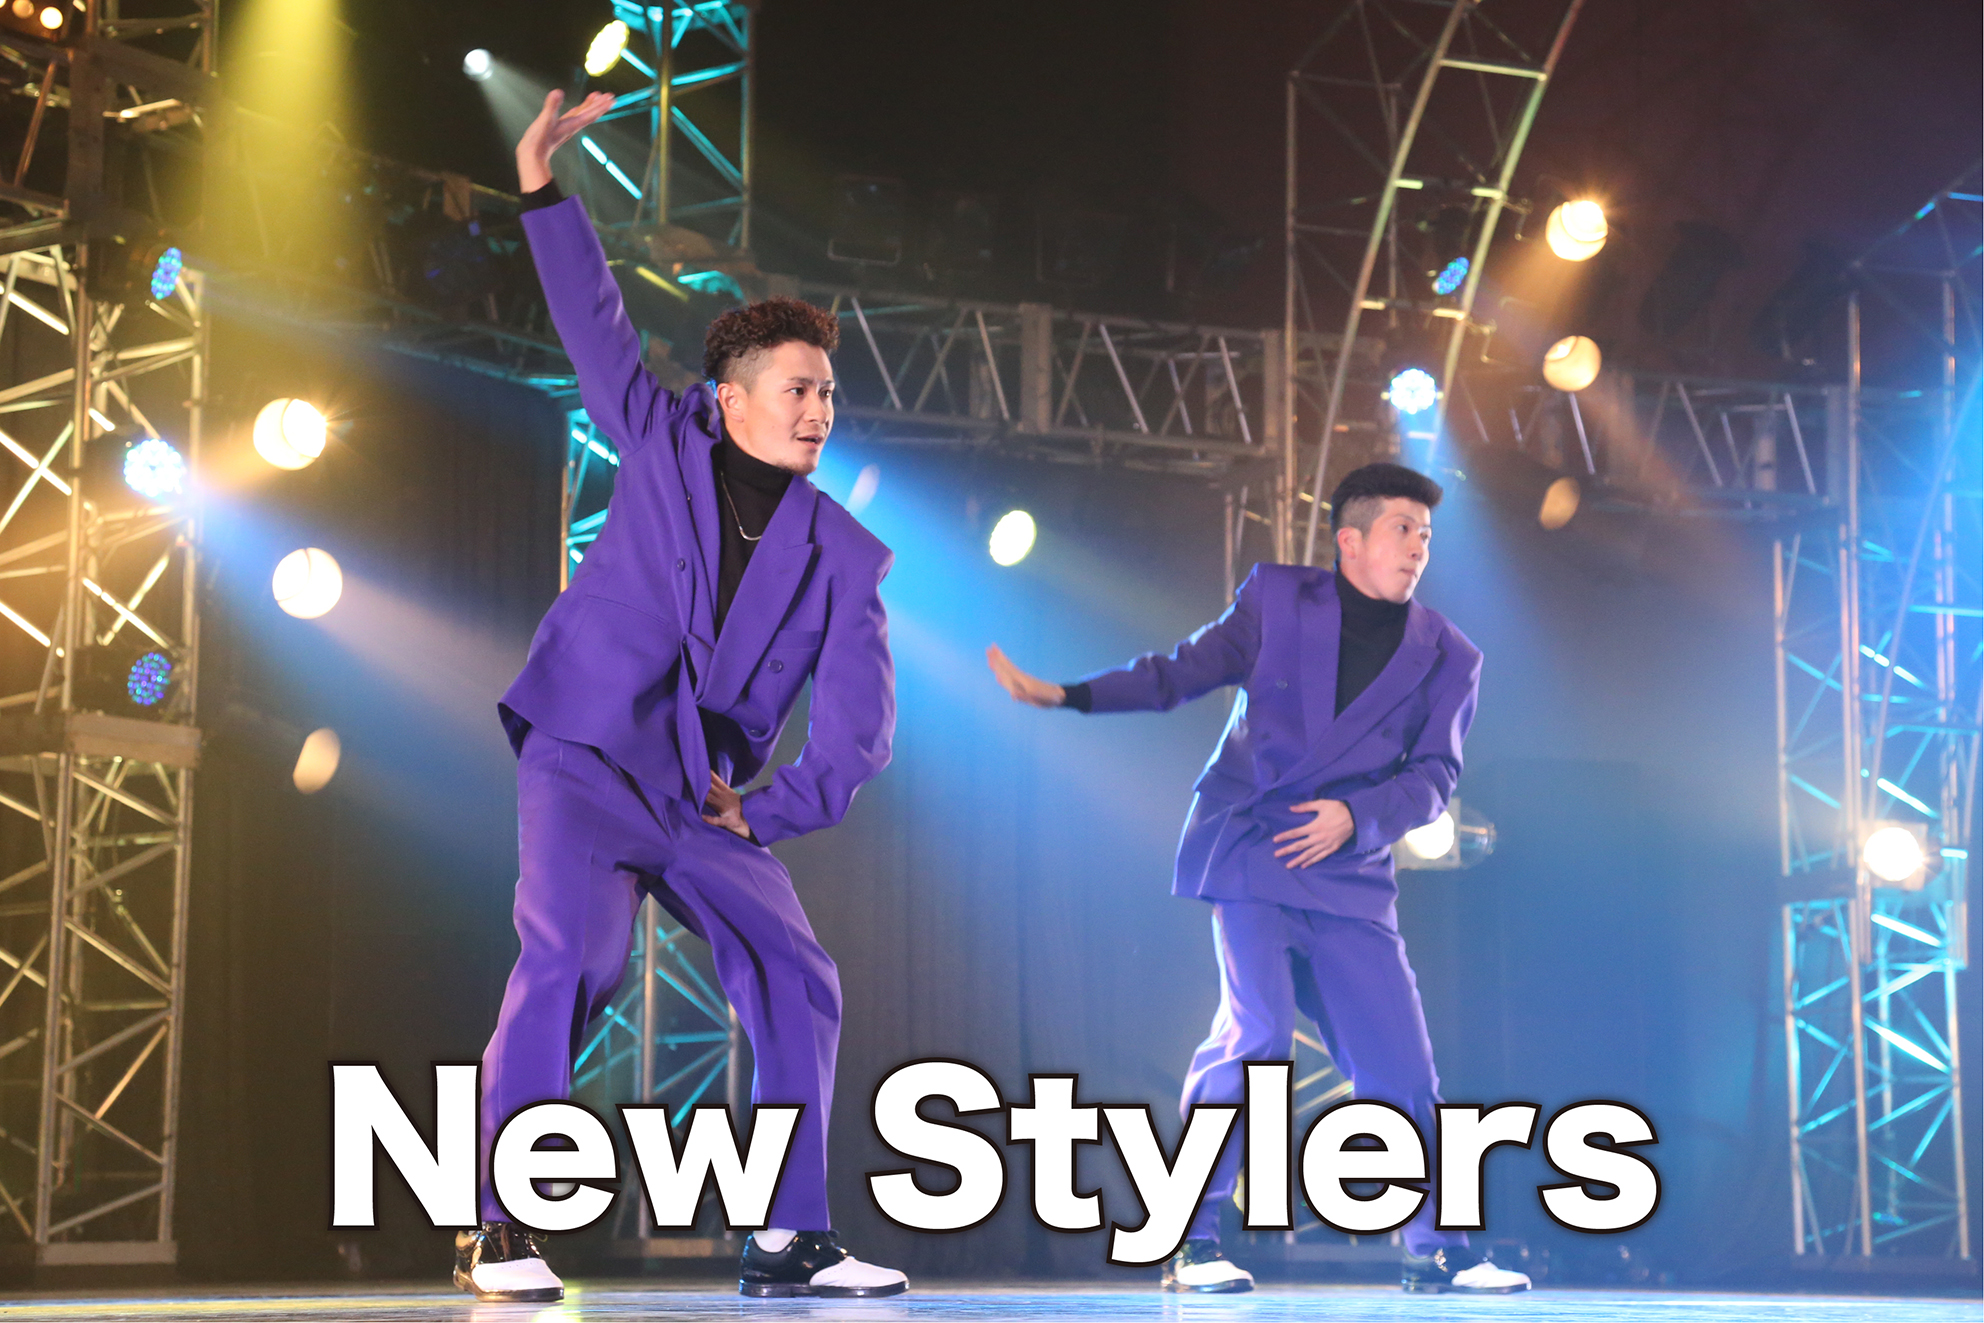 New Stylers